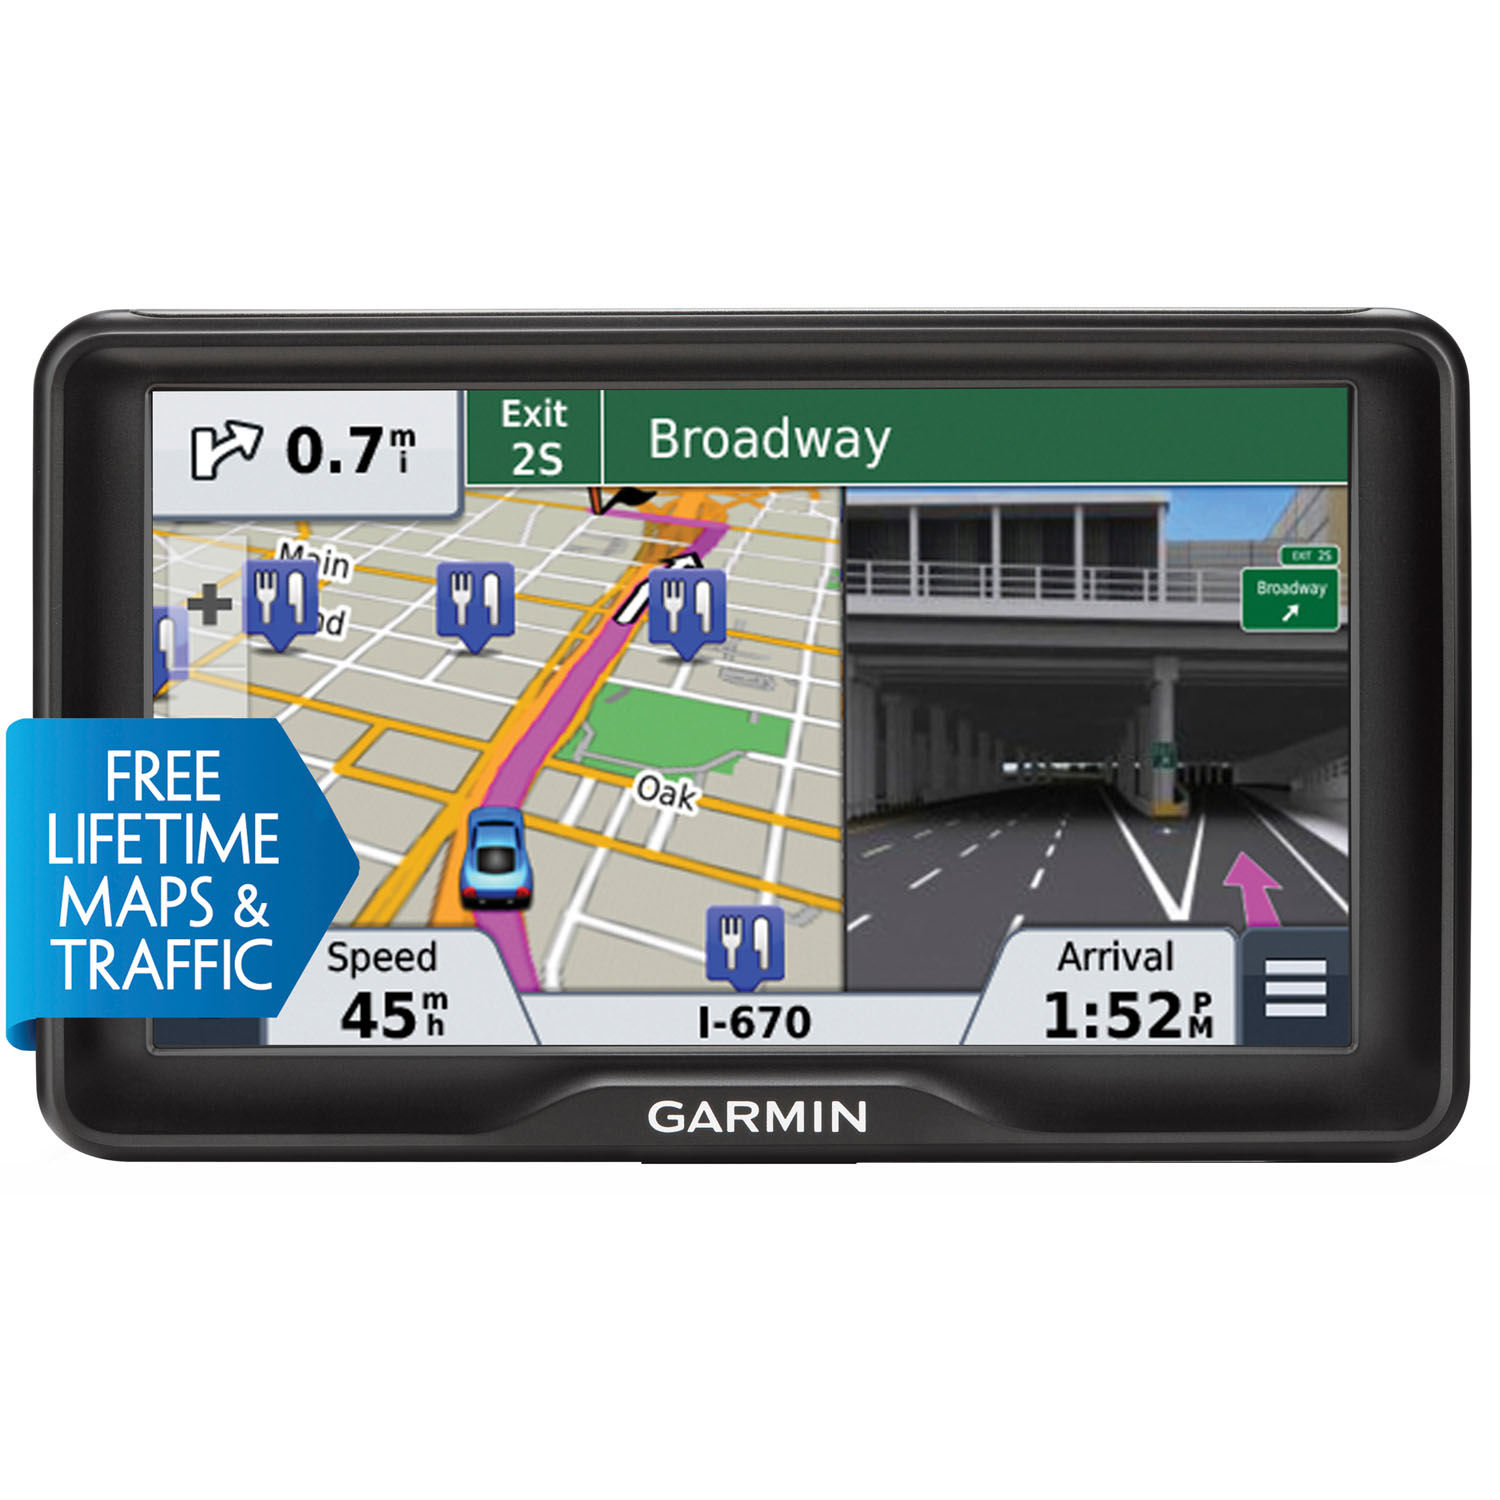 Garmin  7.0 In. GPS Navigator with Free